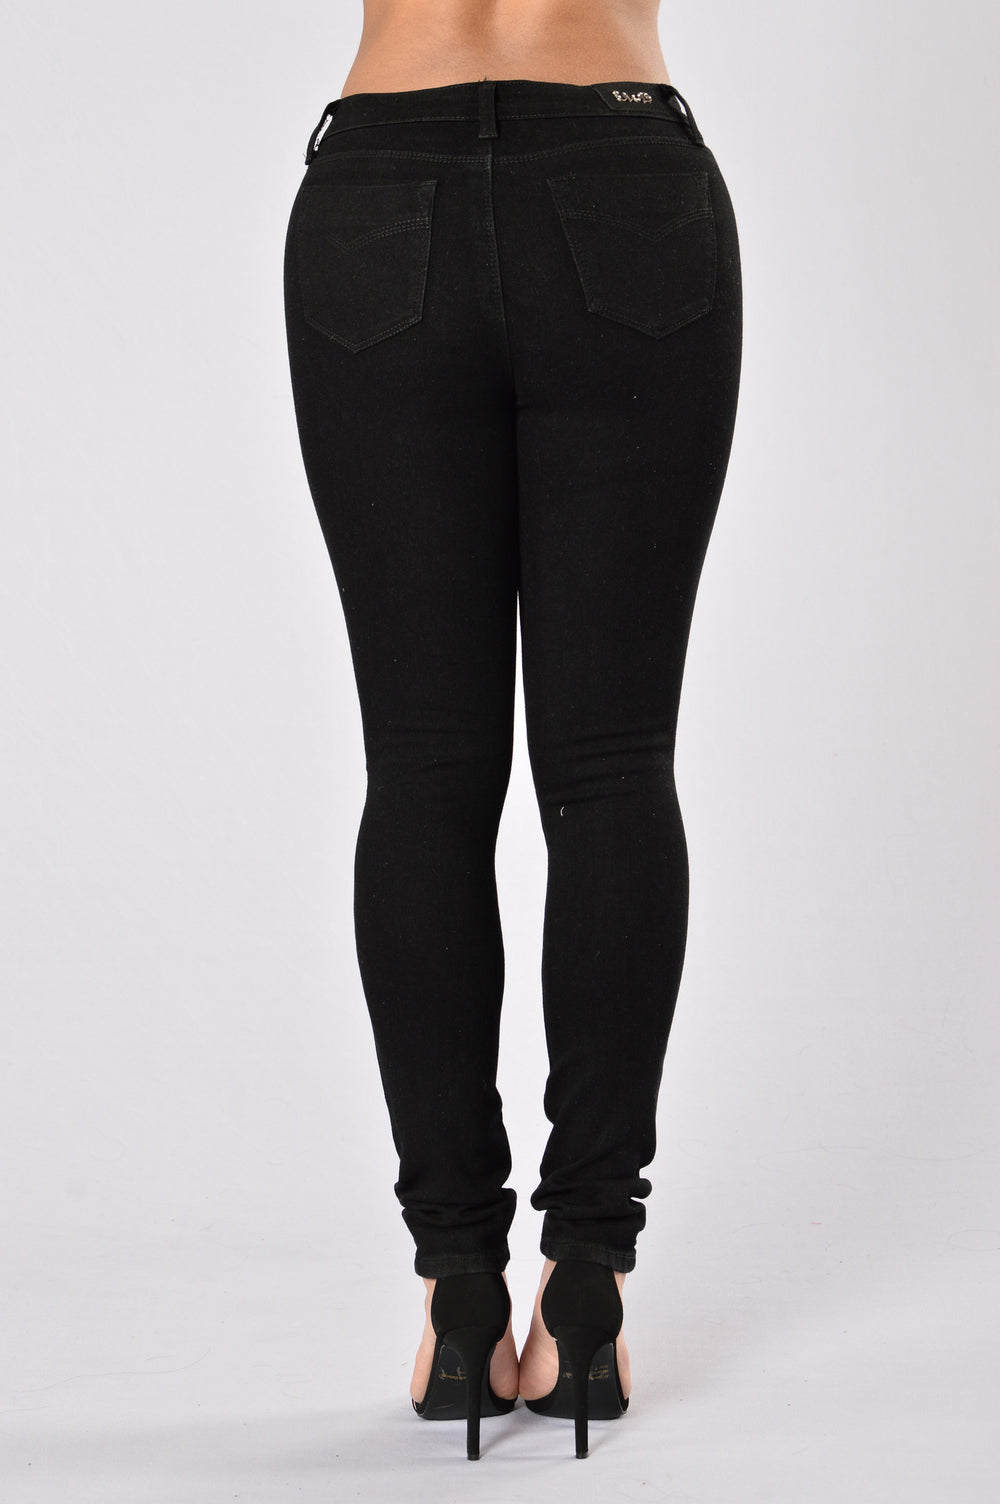 Bring the Heat Jeans - Black